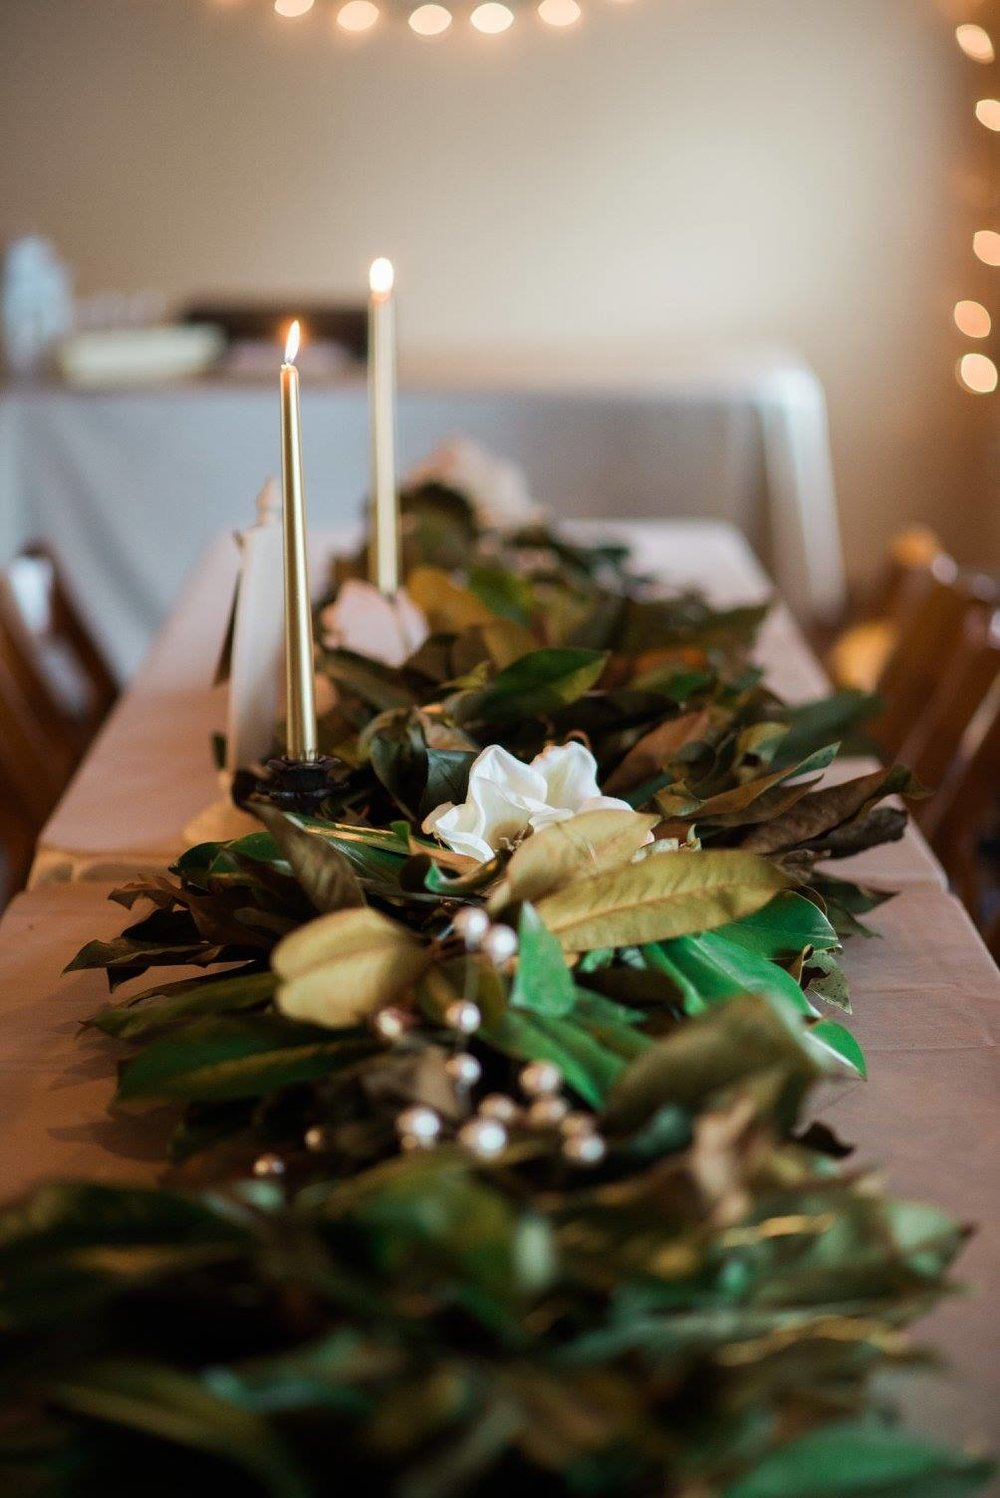 Louisiana Grown - This couple incorporated magnolia flowers and magnolia leaves into her wedding. Magnolias are a symbol commonly associated with Louisiana.